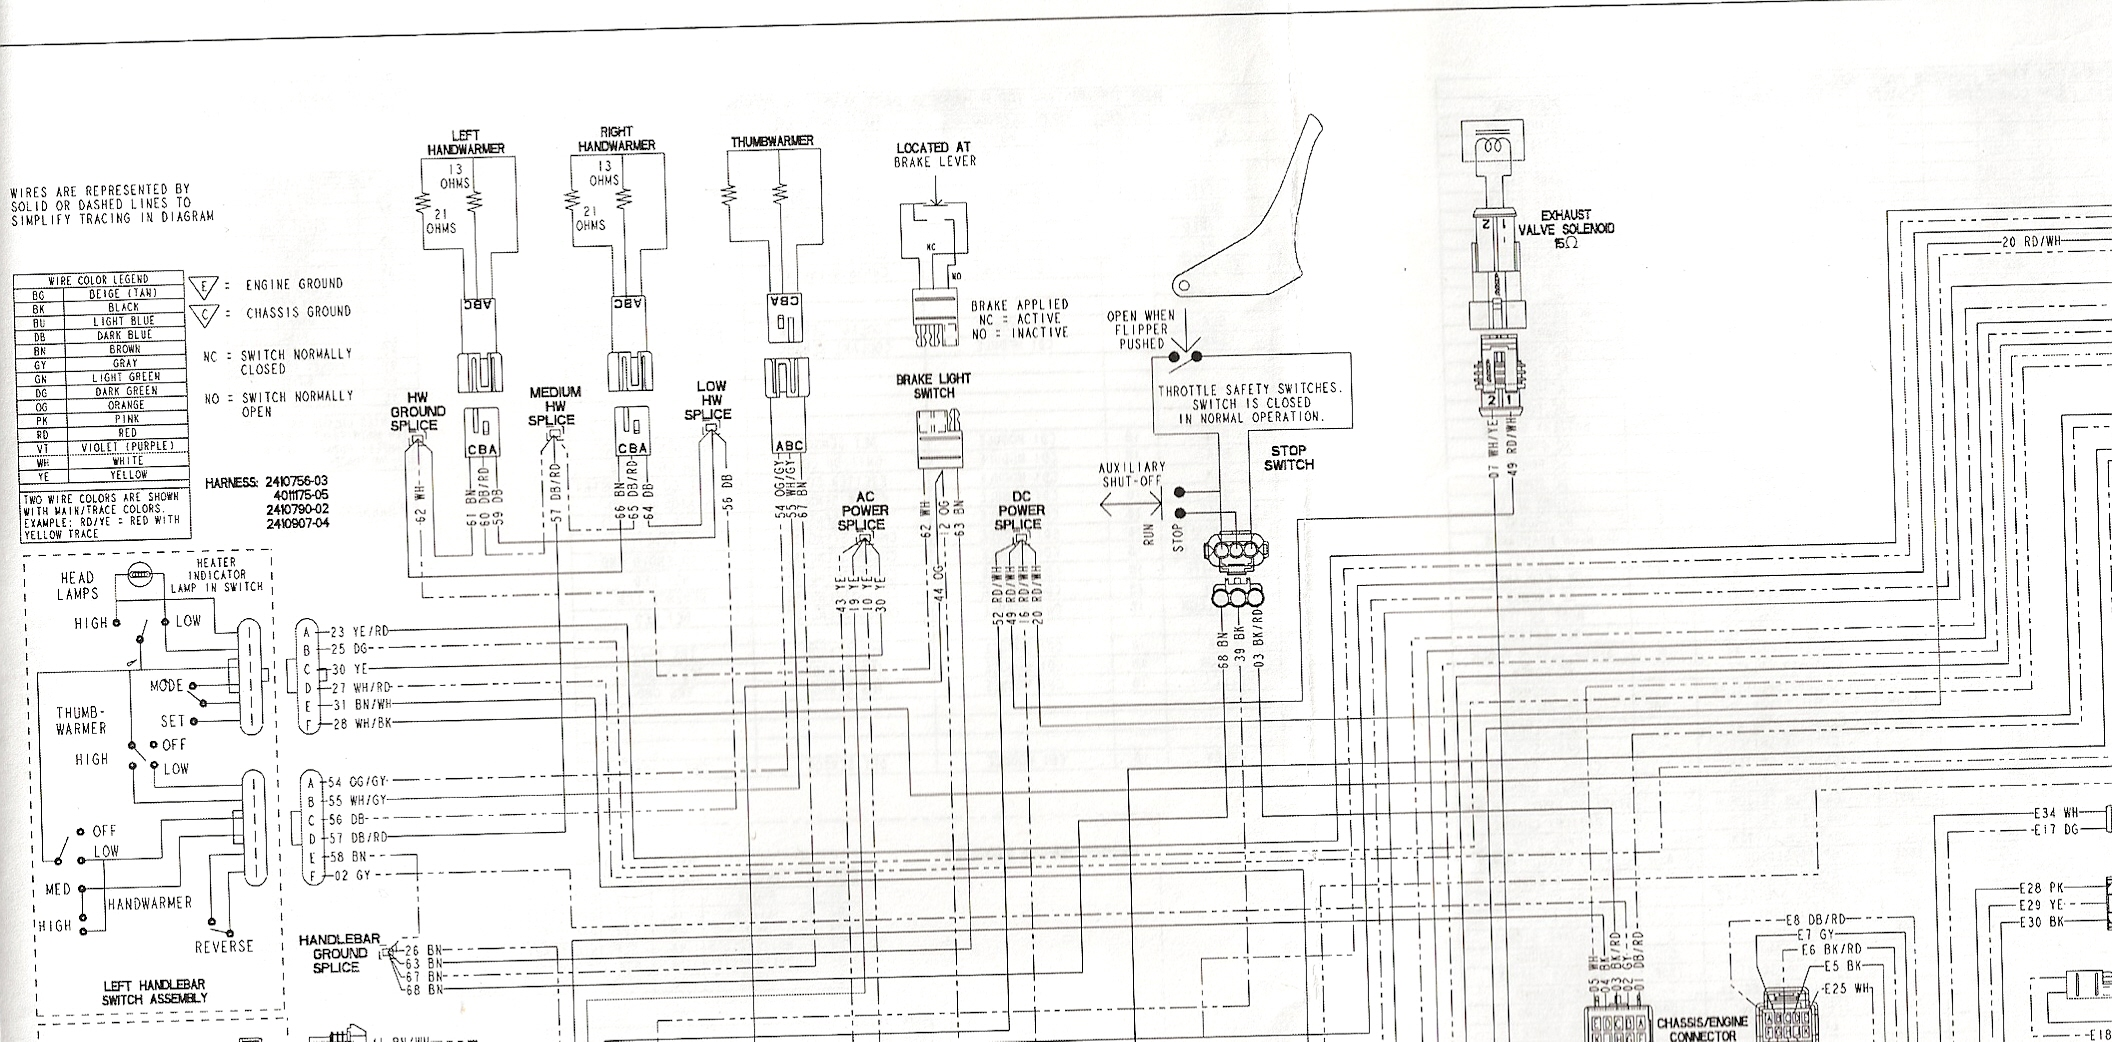 wiring diagram polaris ranger 800  diagrams  wiring diagram images